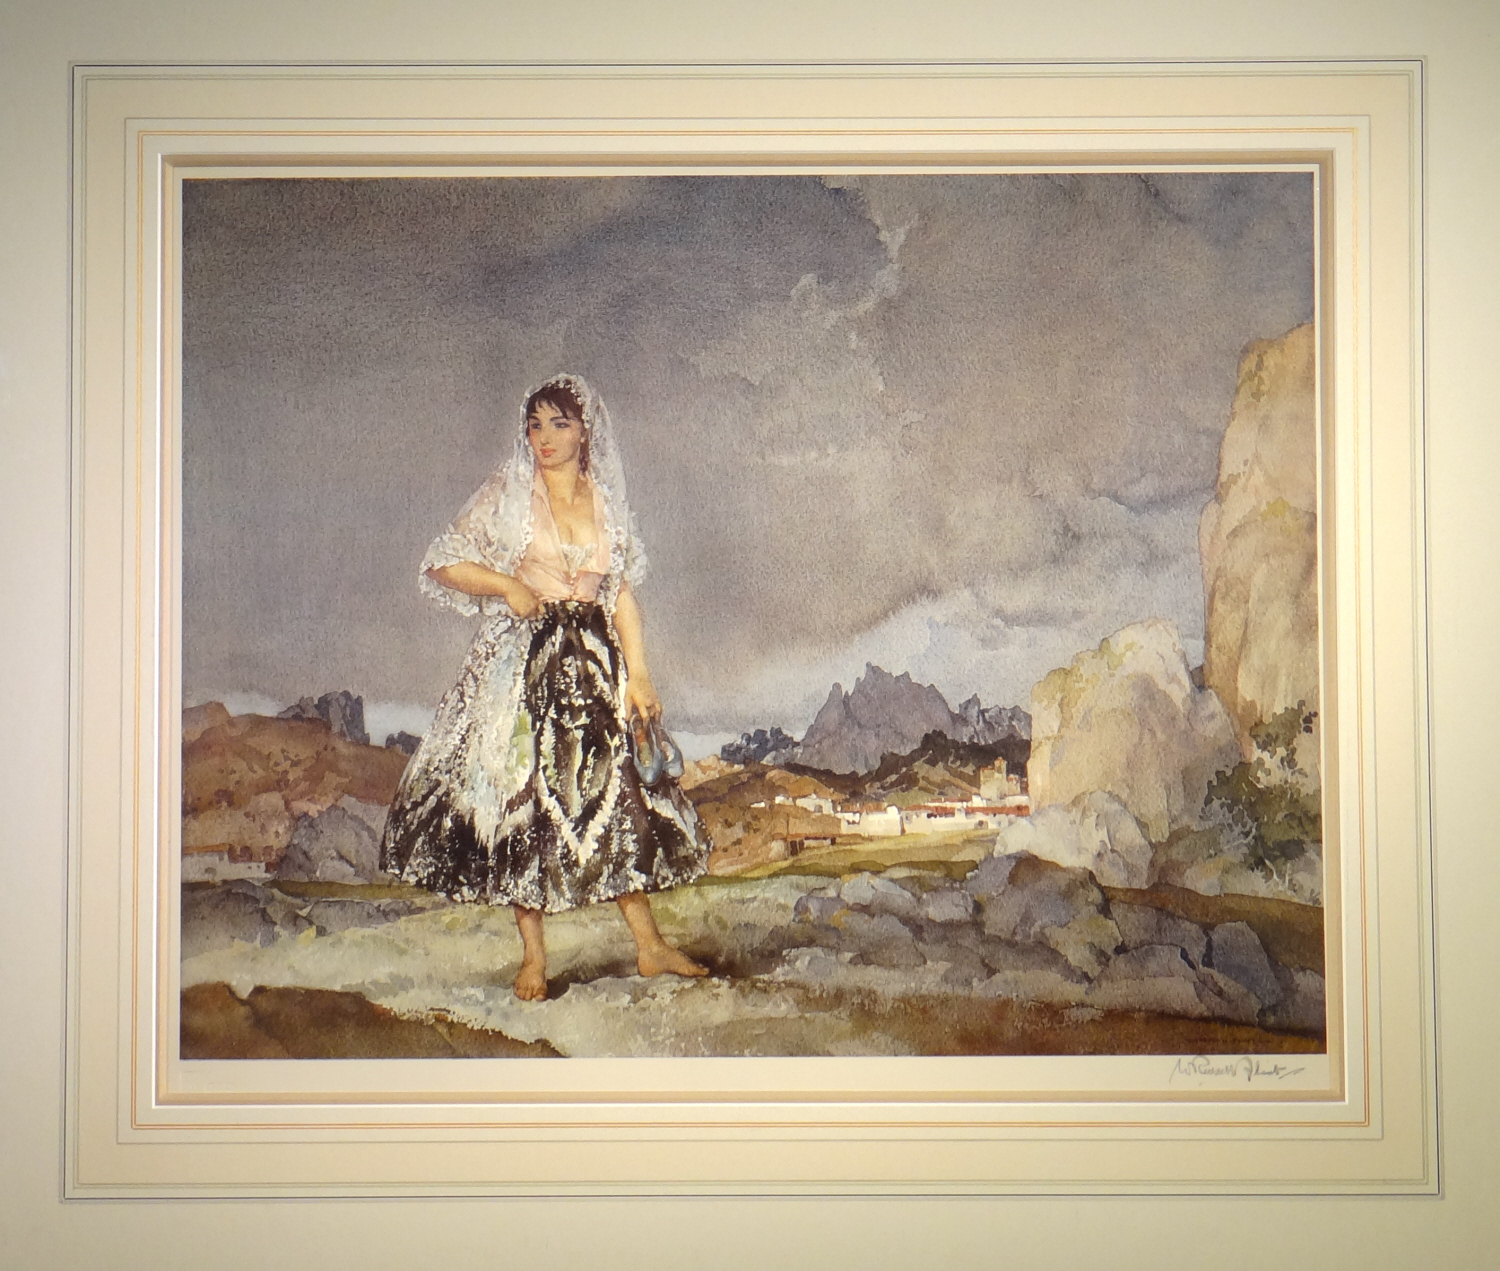 russell flint, Rosalba, signed limited edition print